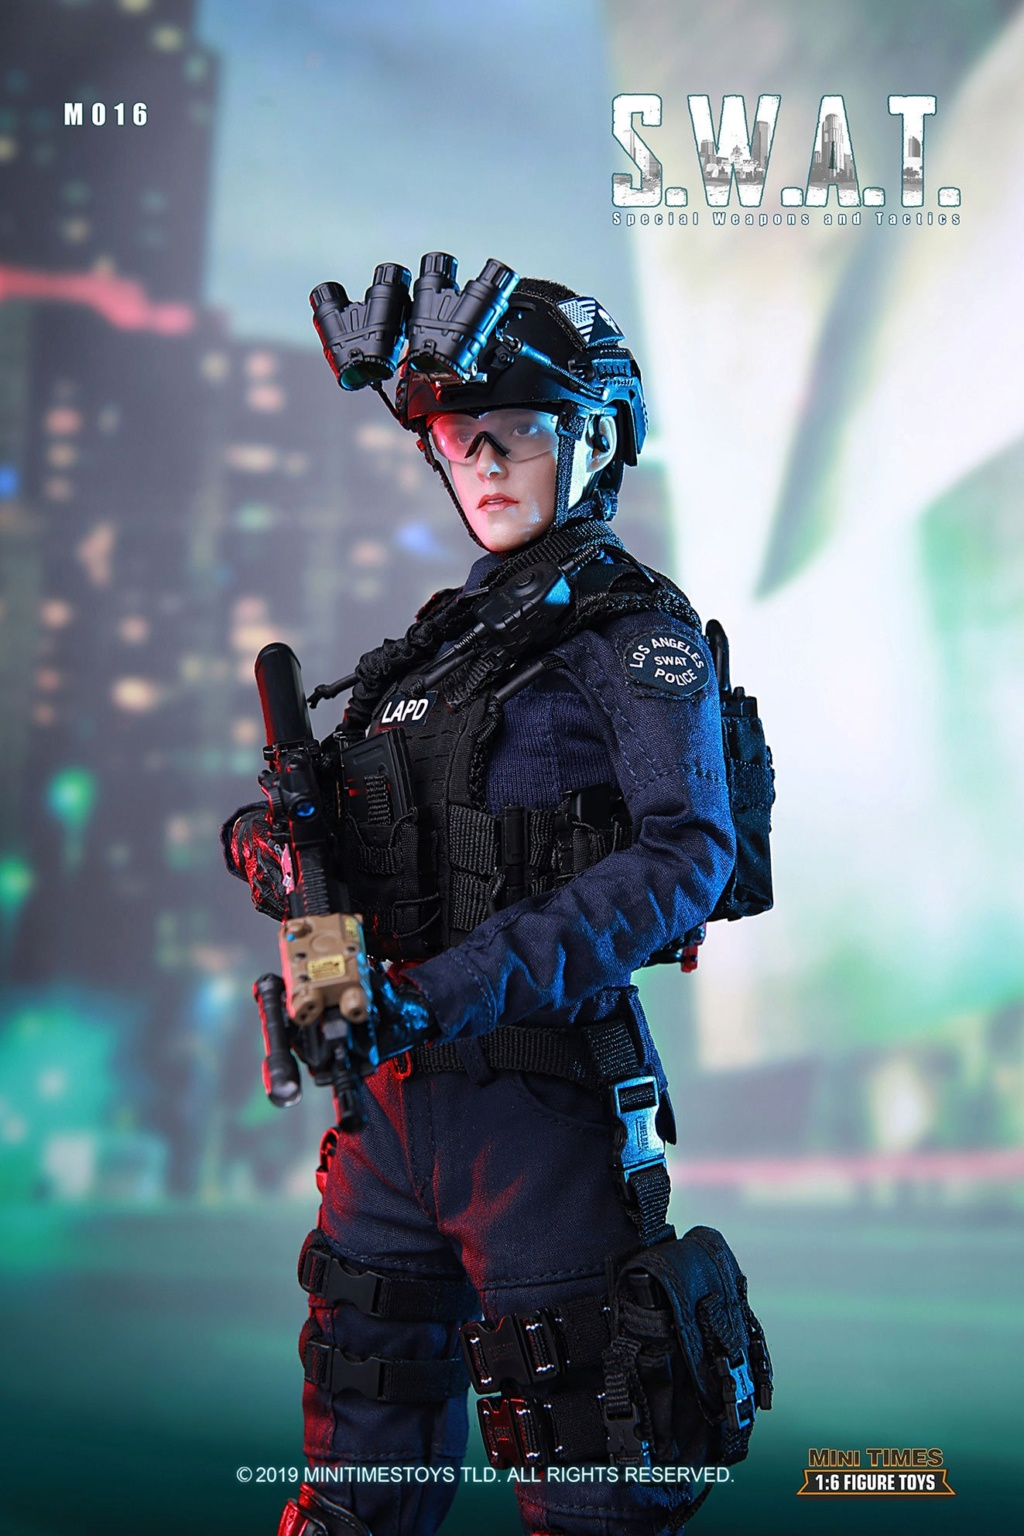 MiniTimes - NEW PRODUCT: mini times toys M016 1/6 Scale Female S.W.A.T. Military 12in Figure 1709